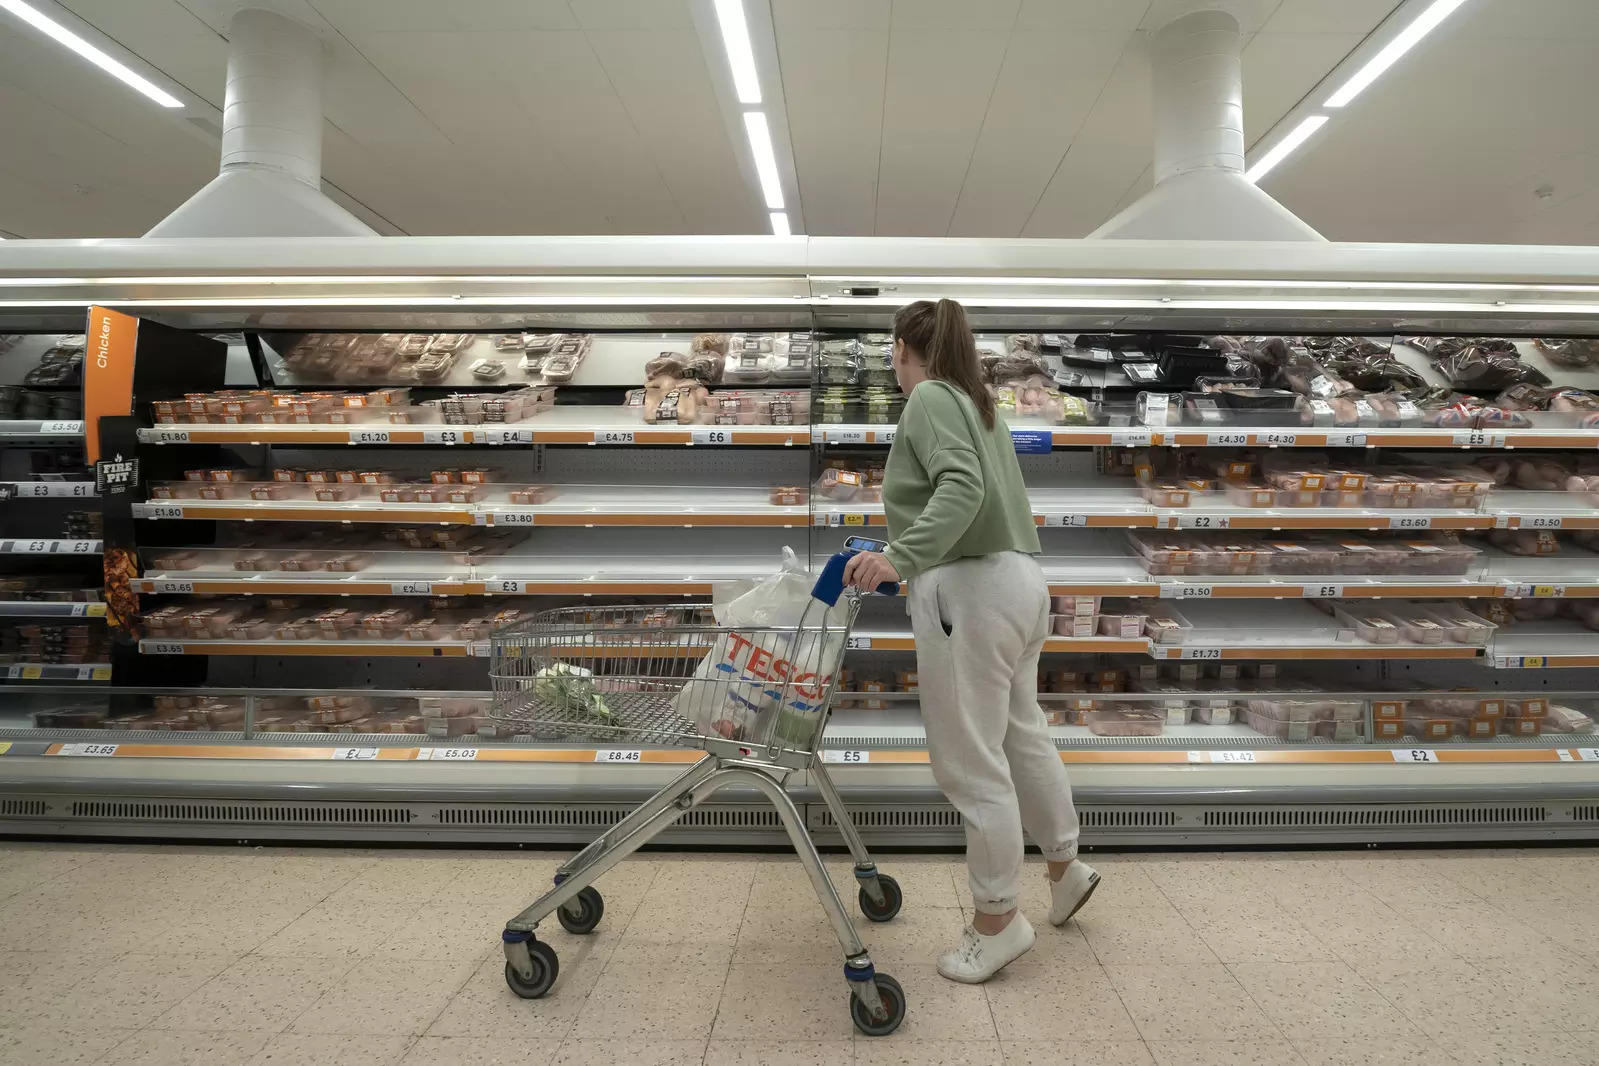 UK retailers face supply crunch as Christmas looms